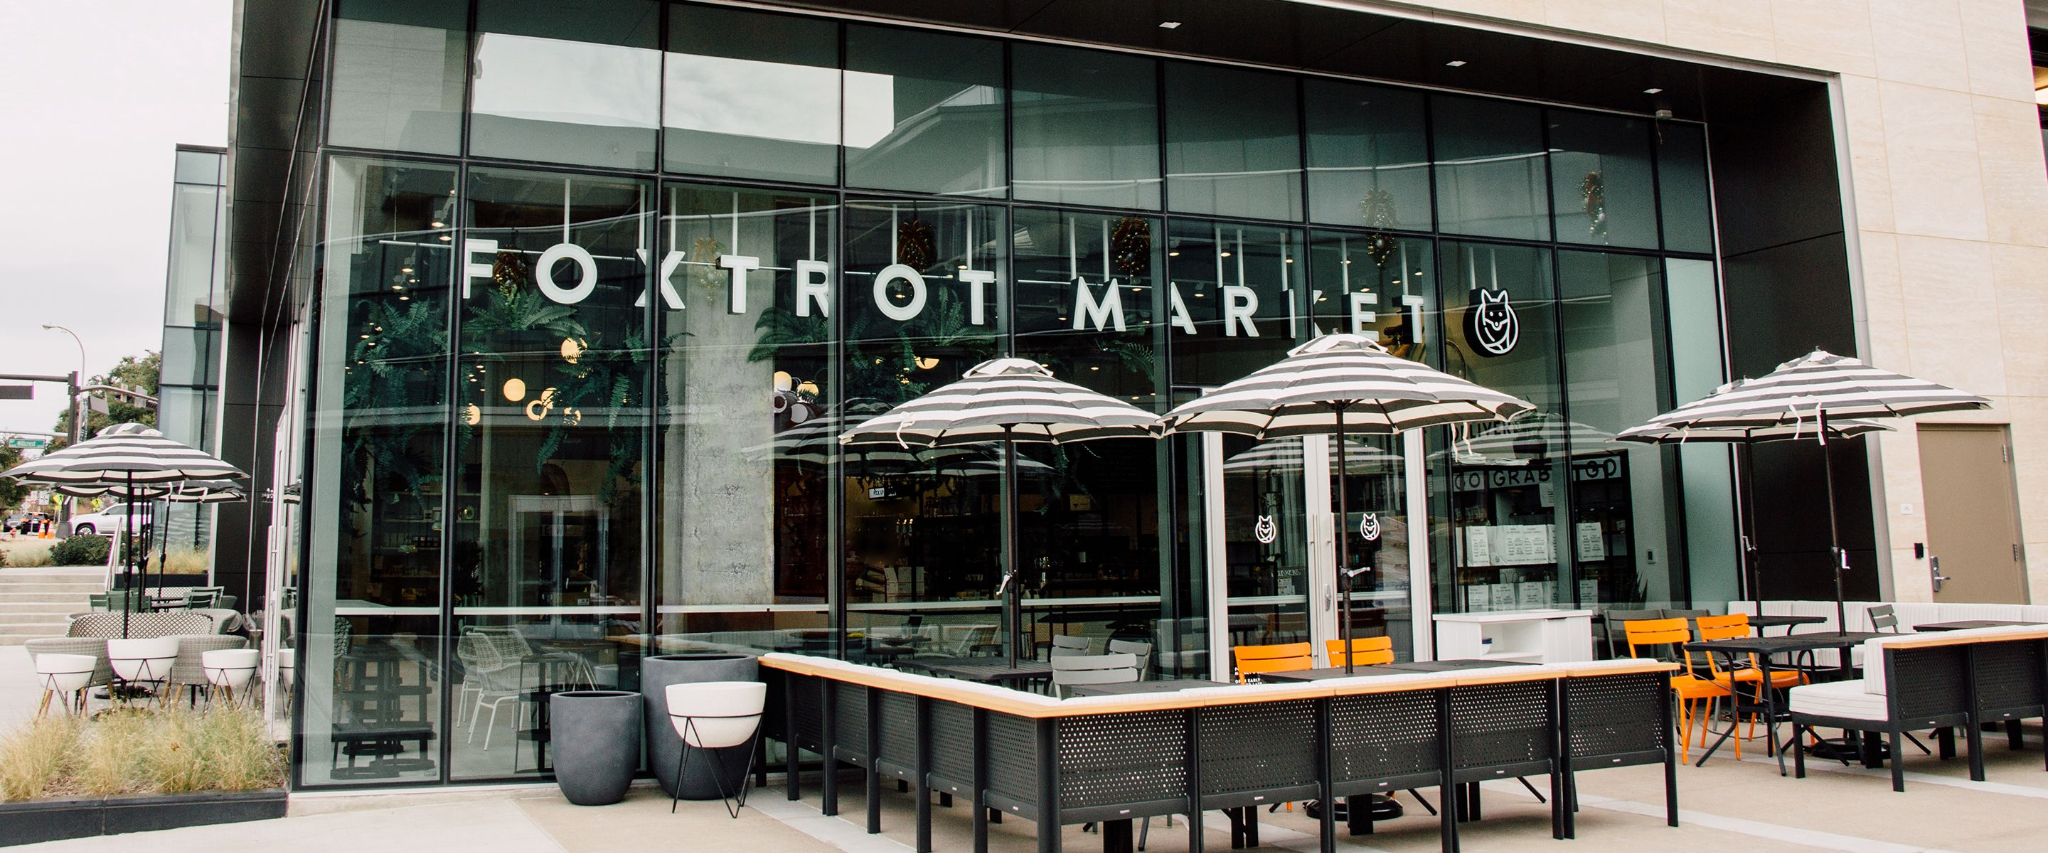 Foxtrot Market - three best places to study off-campus